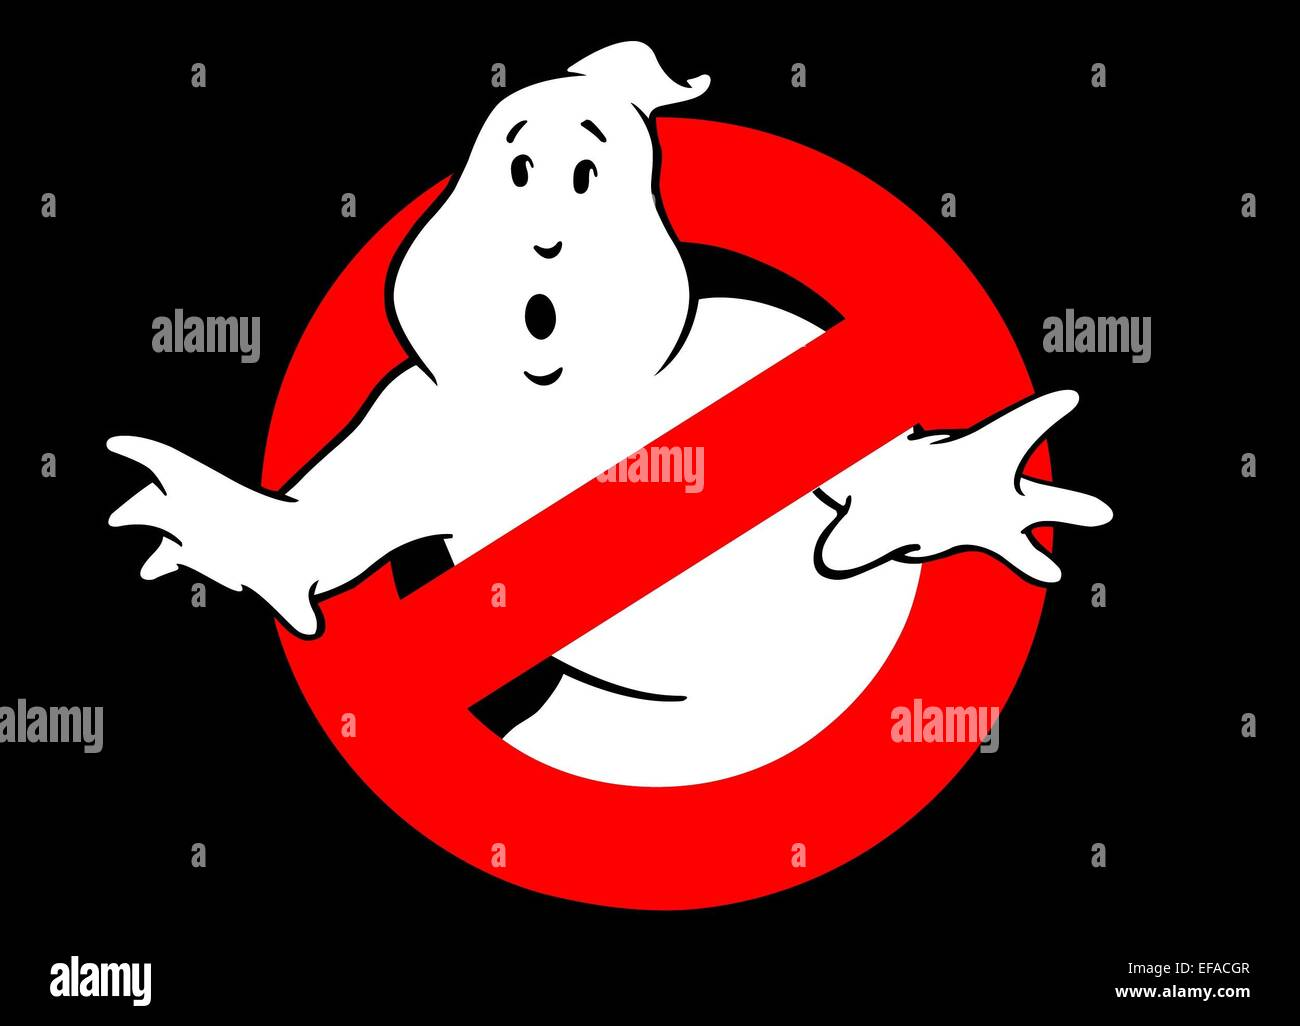 GHOSTBUSTER LOGO GHOSTBUSTERS (1984) Stock Photo